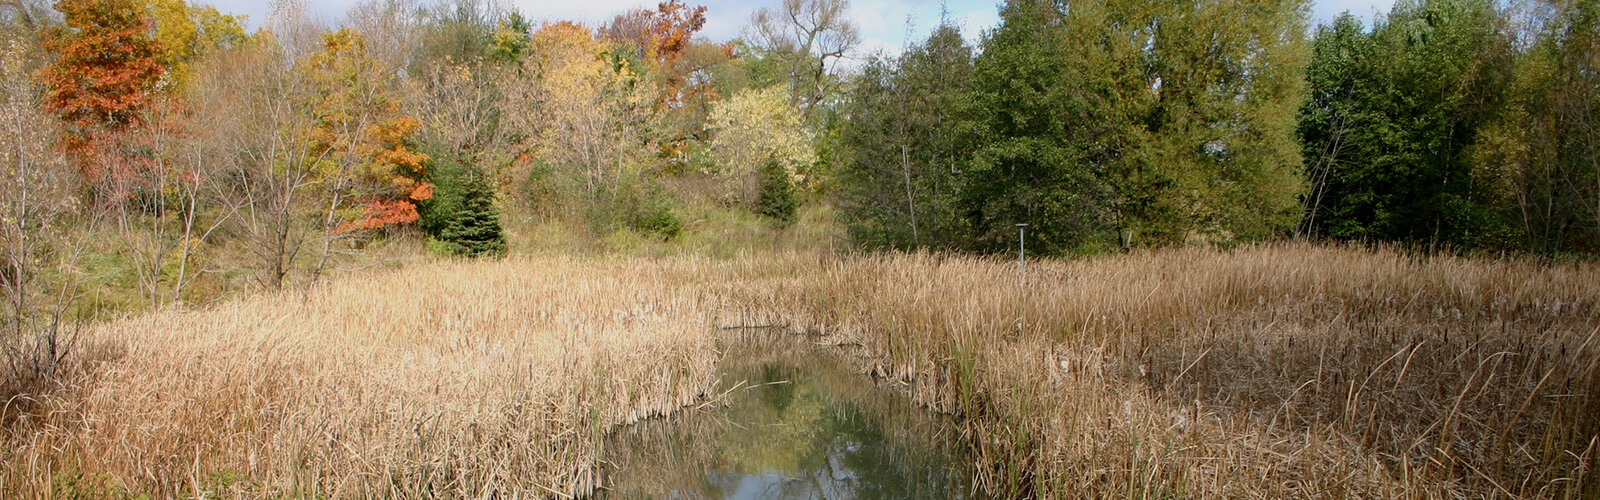 A fall scene with a swamp in the foreground lined with lush trees and greenery in the background.